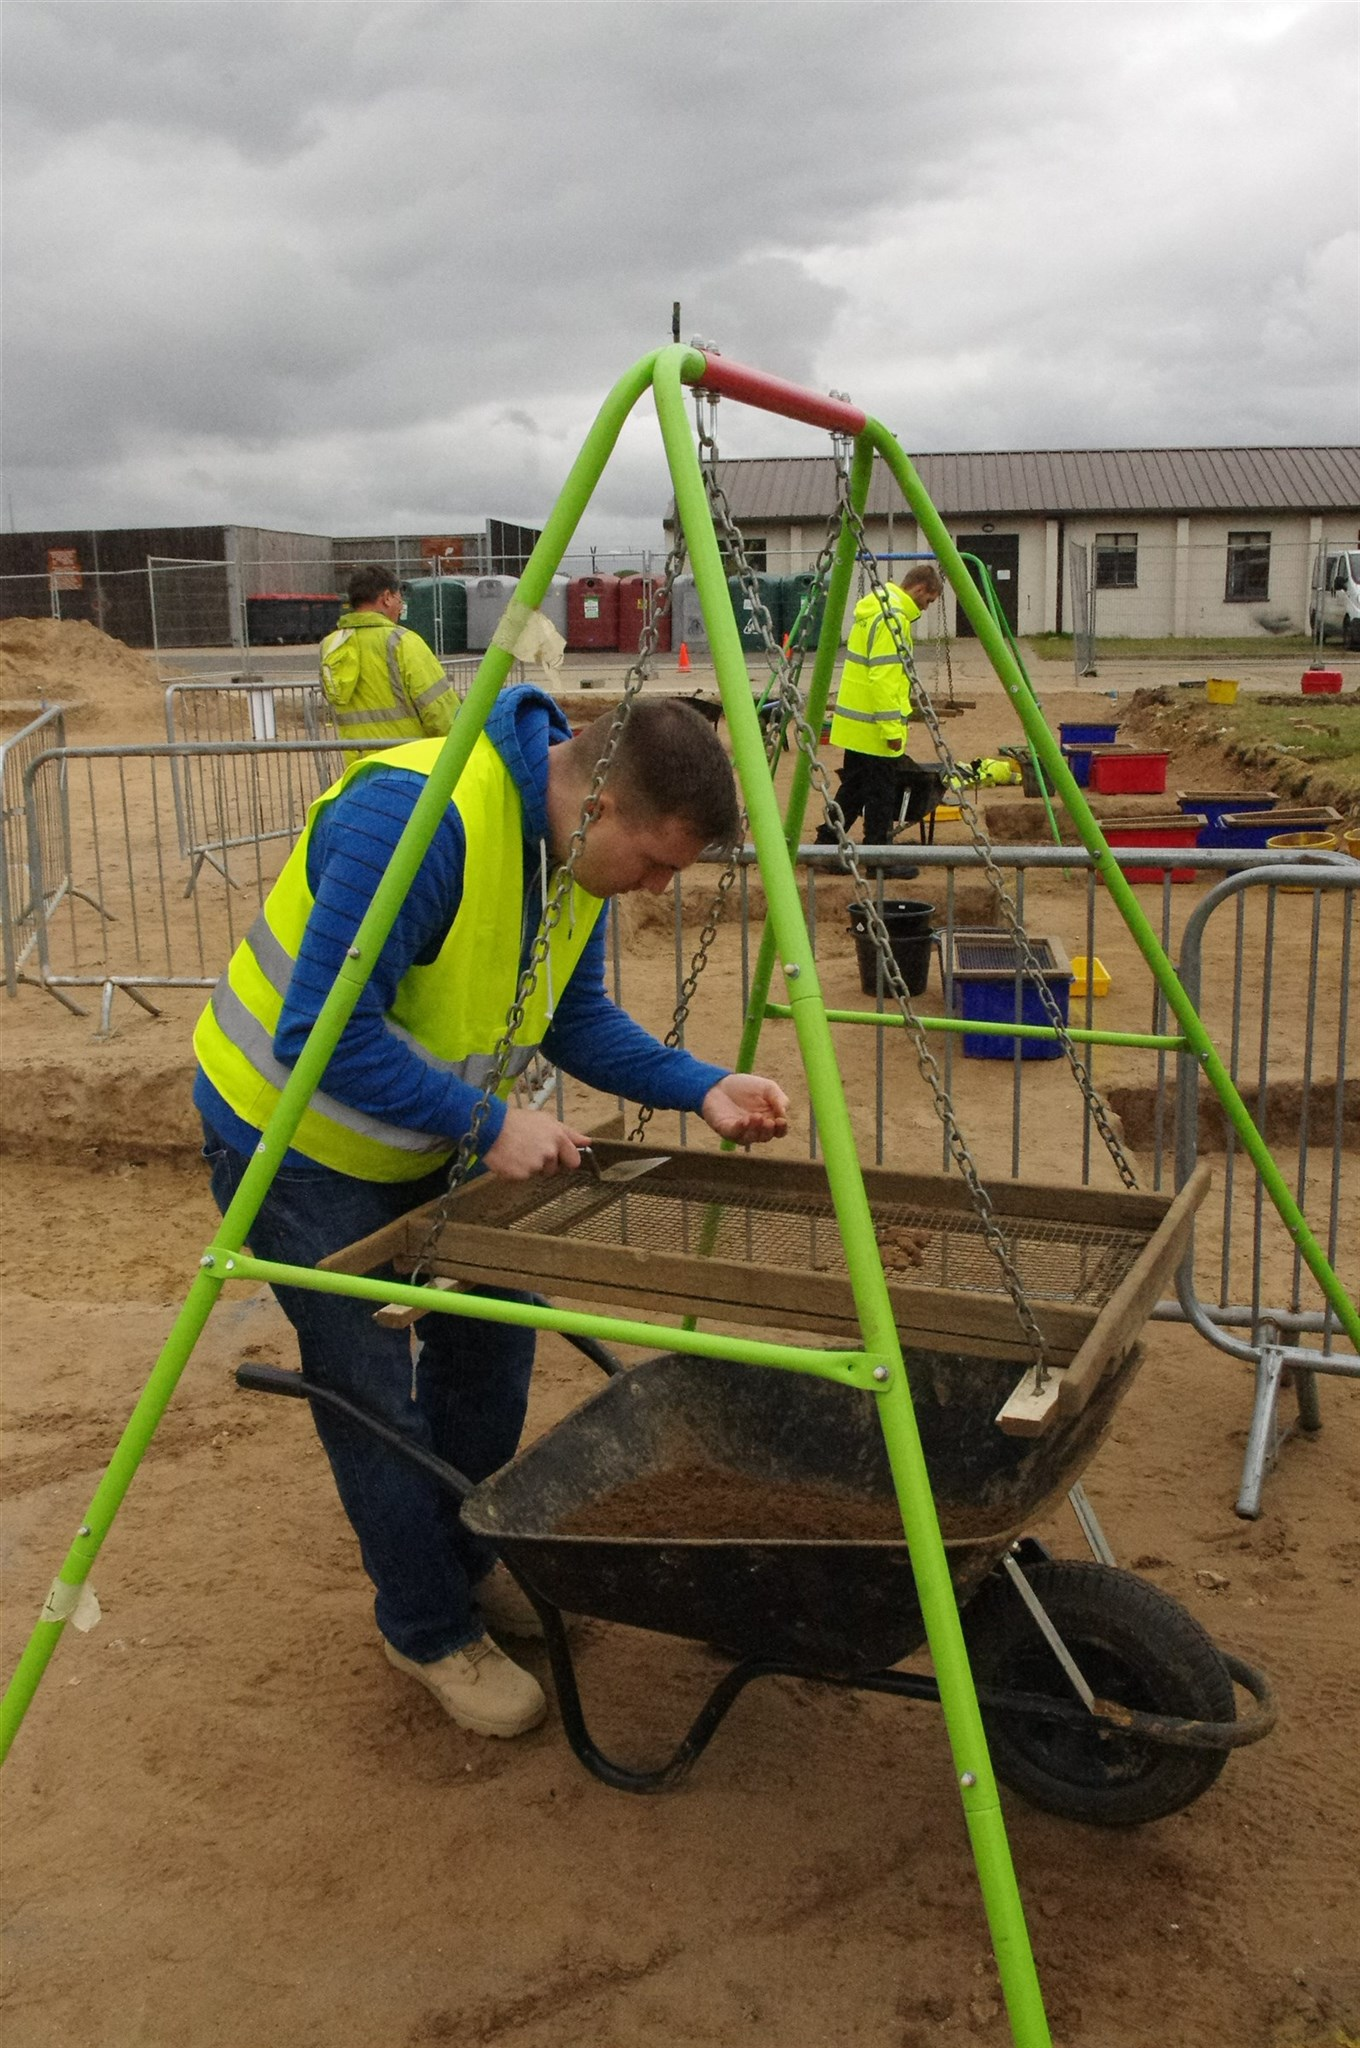 A volunteer sieving spoil at the RAF Lakenheath community excavation